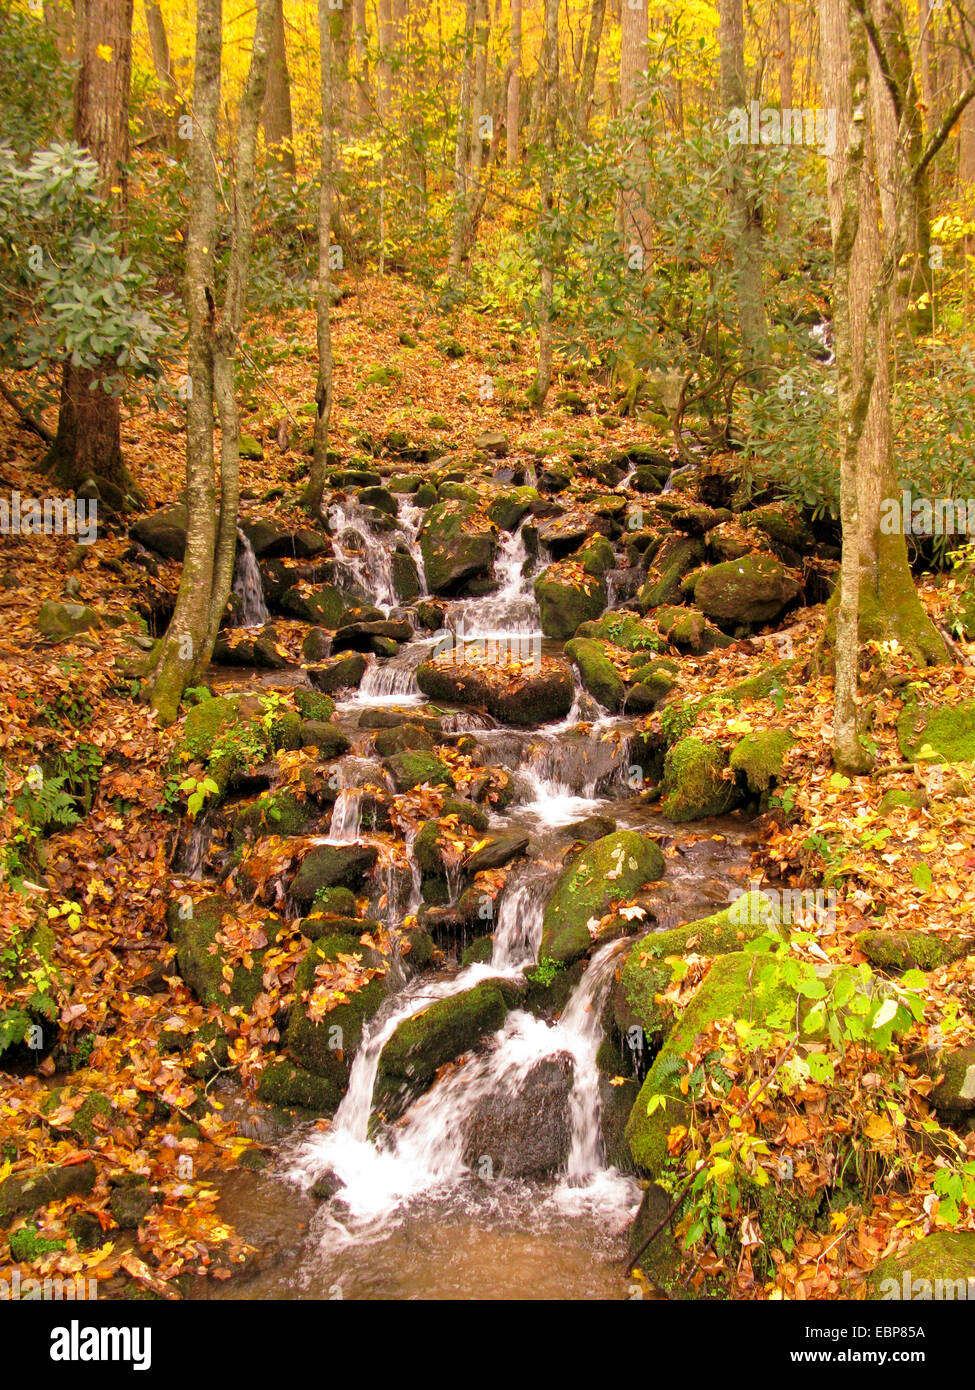 Small stream in Great Smoky Mountains National Park in autumn. - Stock Image